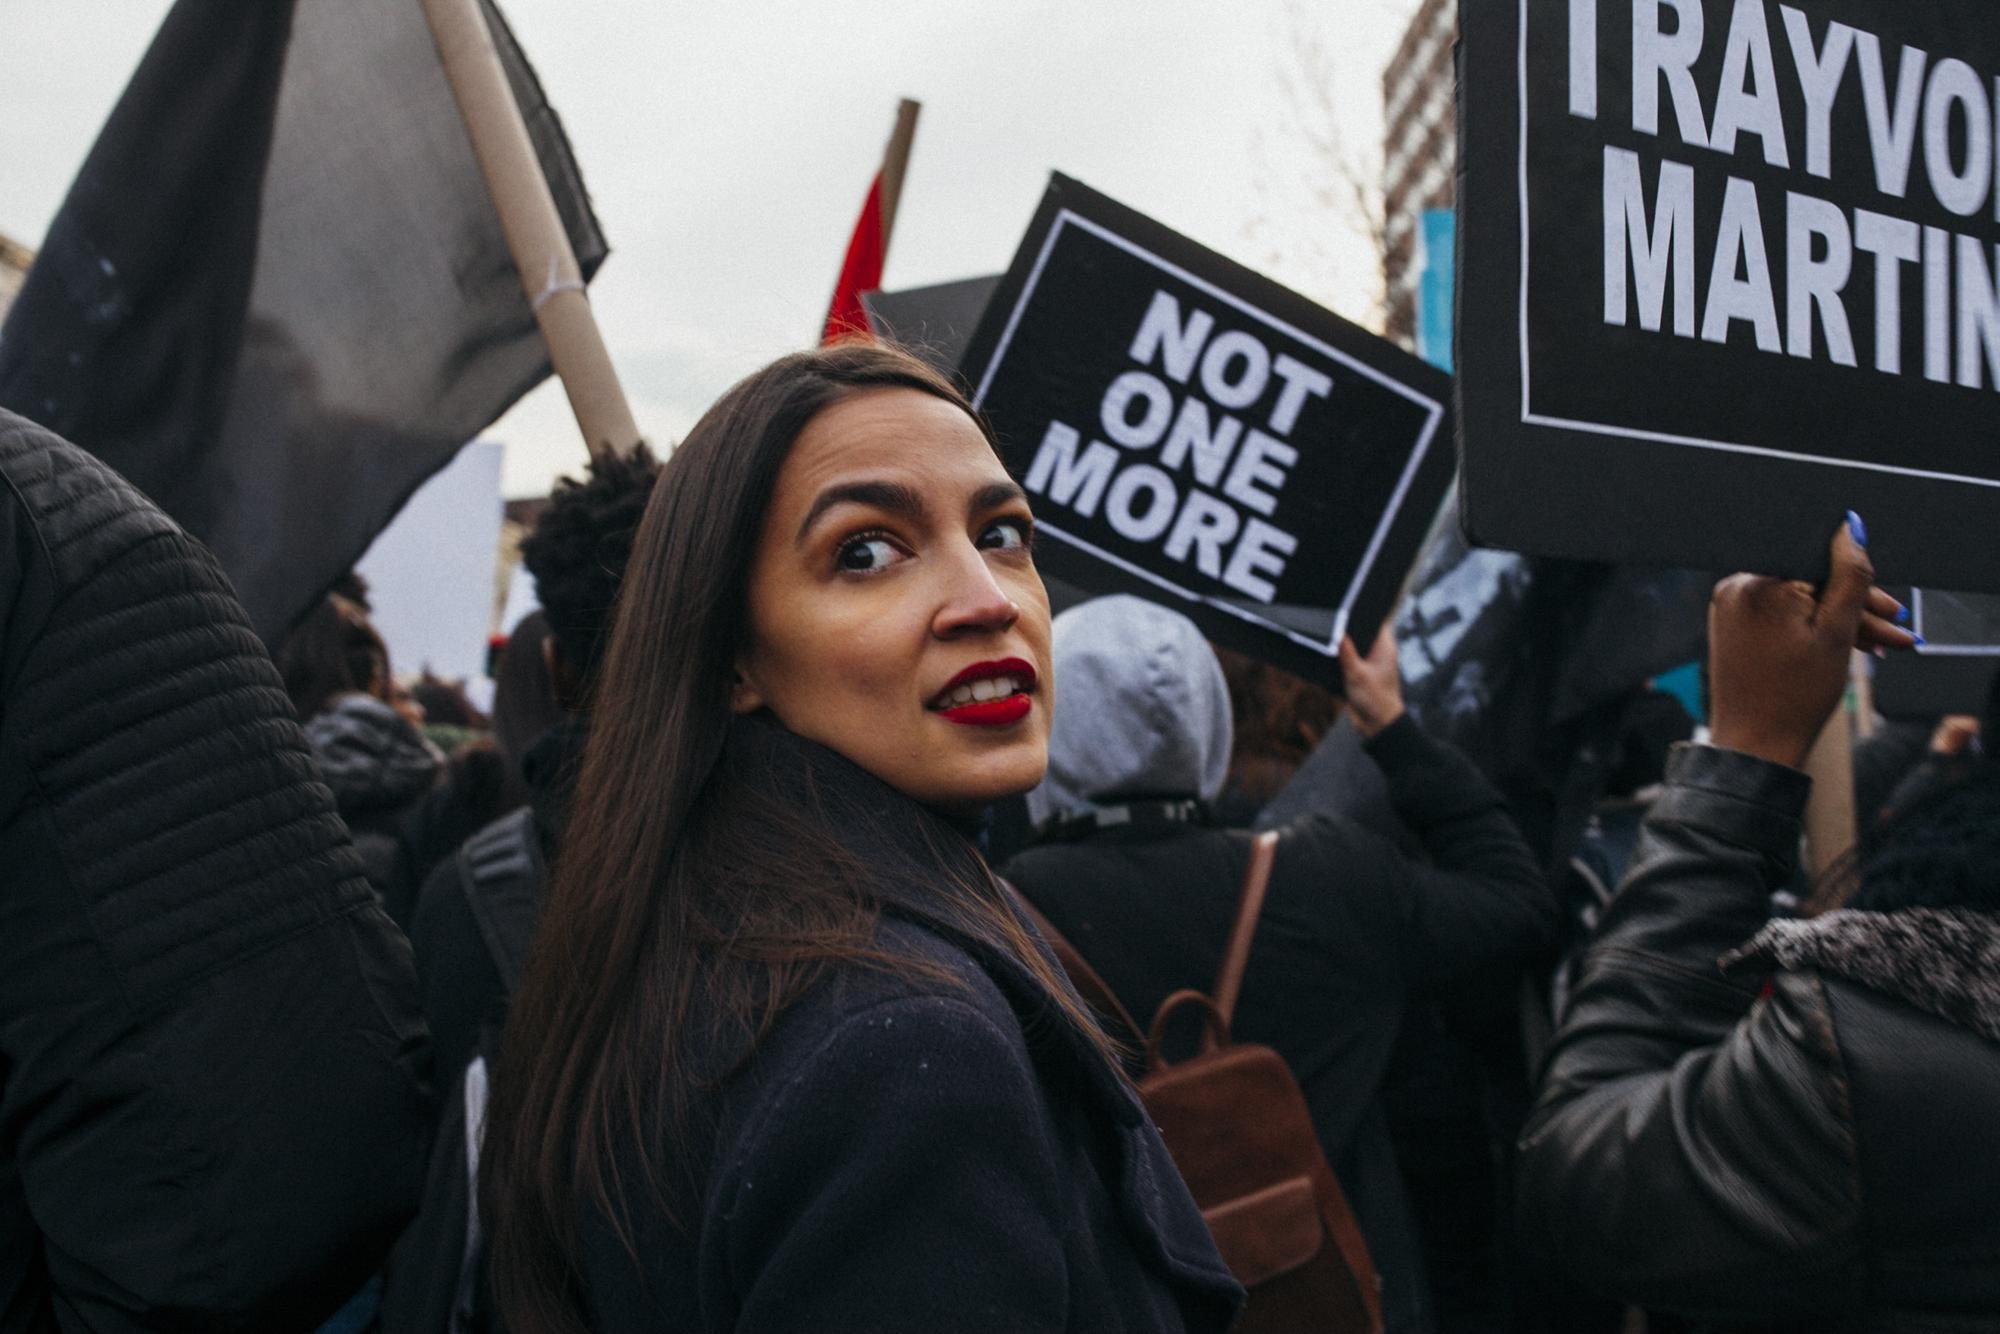 Amongst chanting and song, Alexandria Ocasio-Cortez joins the crowd of demonstrators being led by Black Lives Matter Greater New York Youth Coalition down Malcolm X Blvd, in the Harlem neighborhood of Manhattan, New York, December 2, 2017.